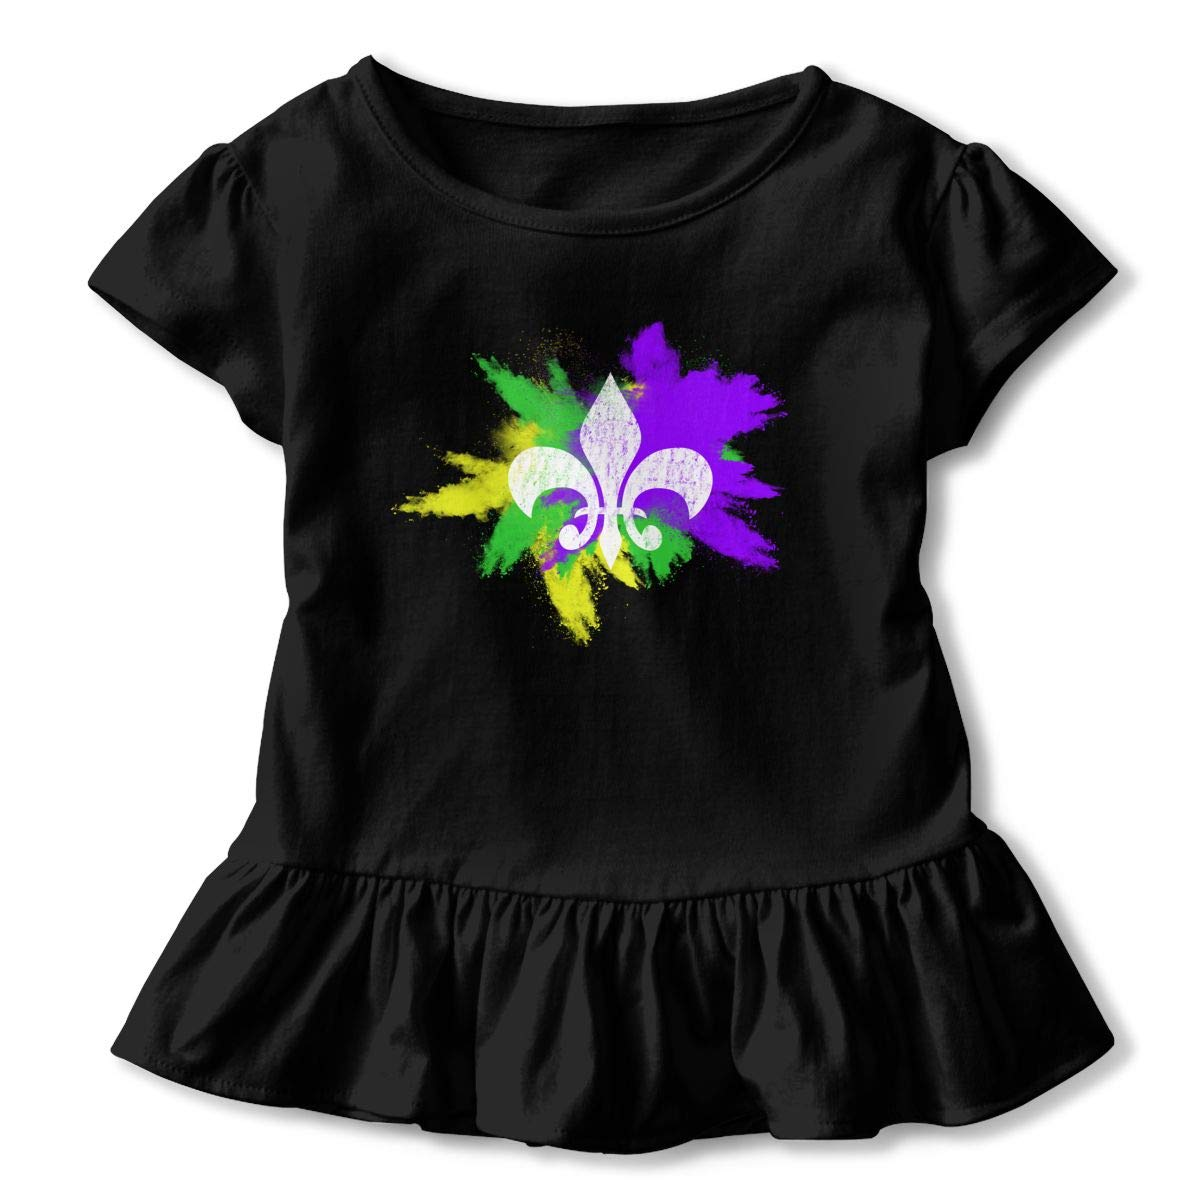 New Orleans Party Toddler Baby Girls Short Sleeve Ruffle T-Shirt Fleur De Lis Mardi Gras